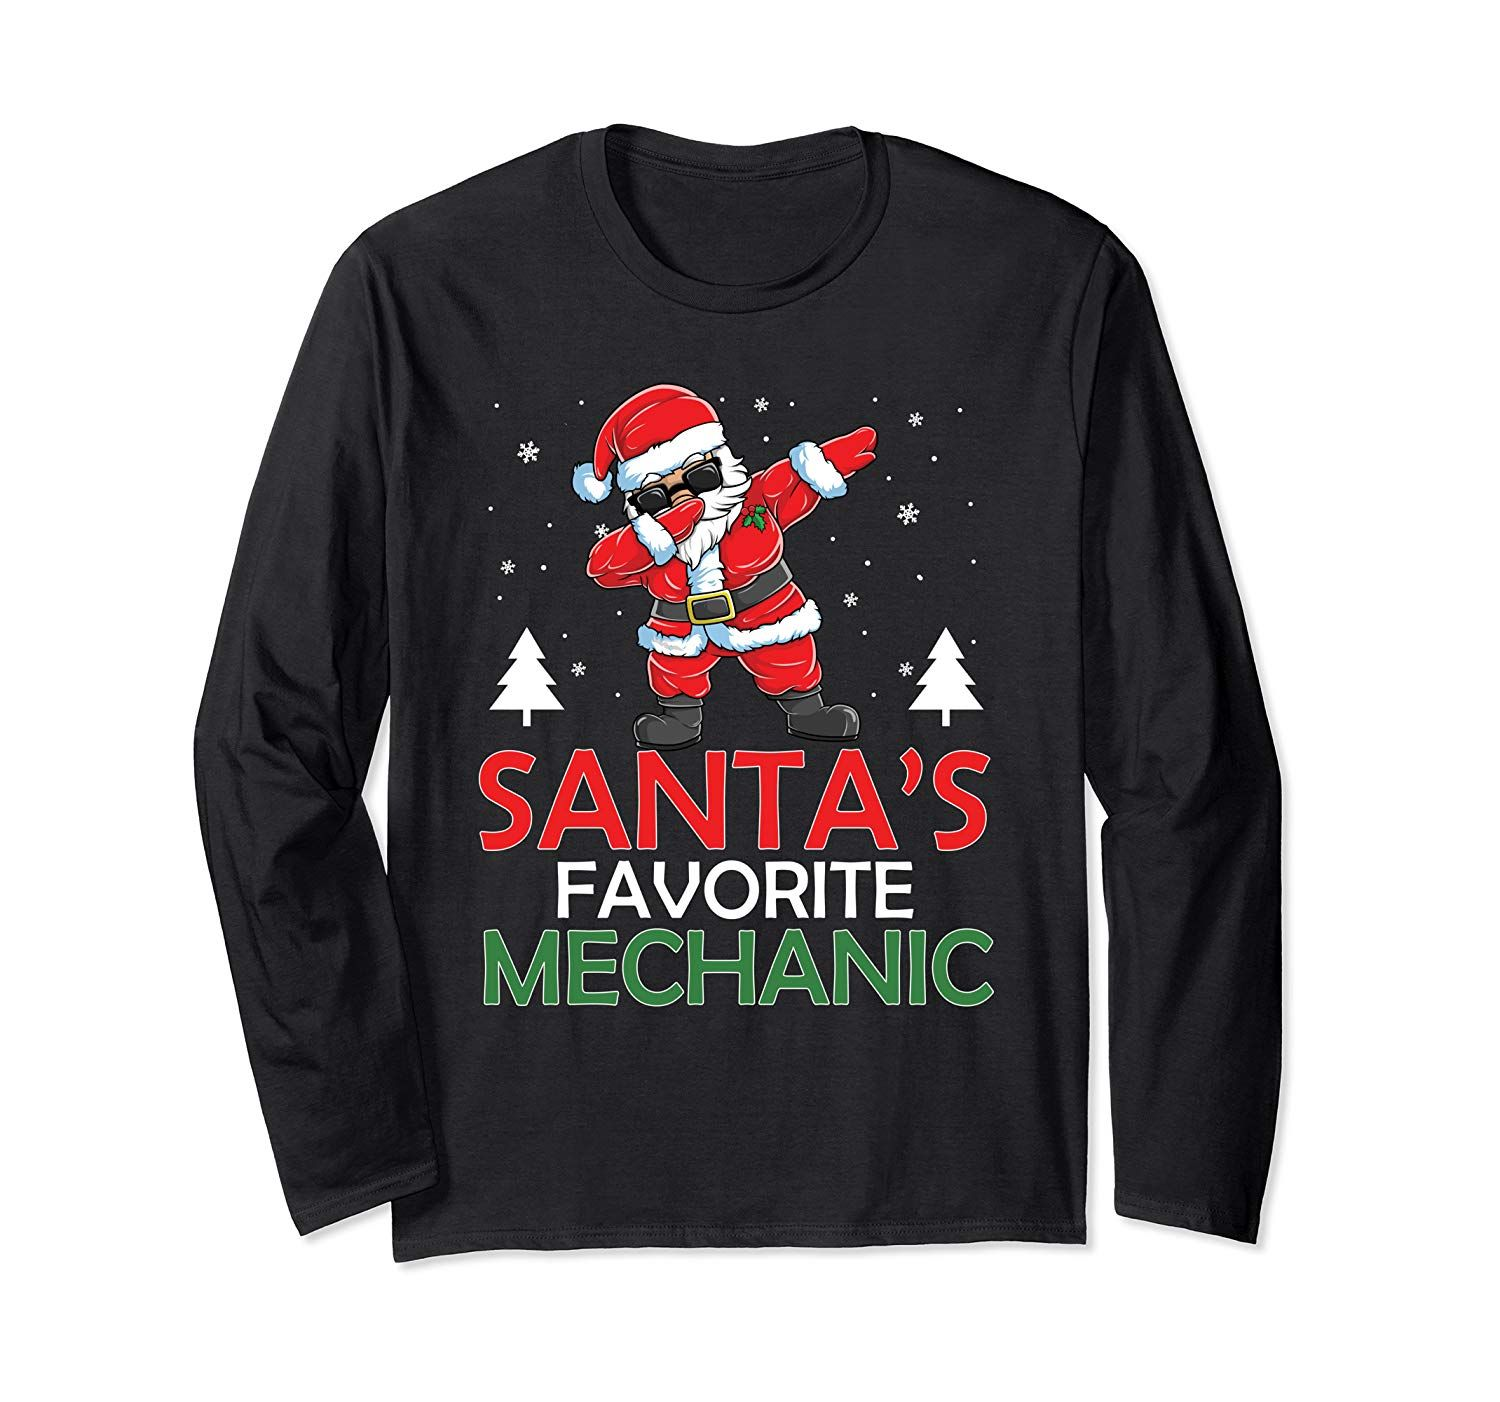 Funny Santa's Favorite Mechanic Christmas Costume Xmas Gifts Long Sleeve T-Shirt